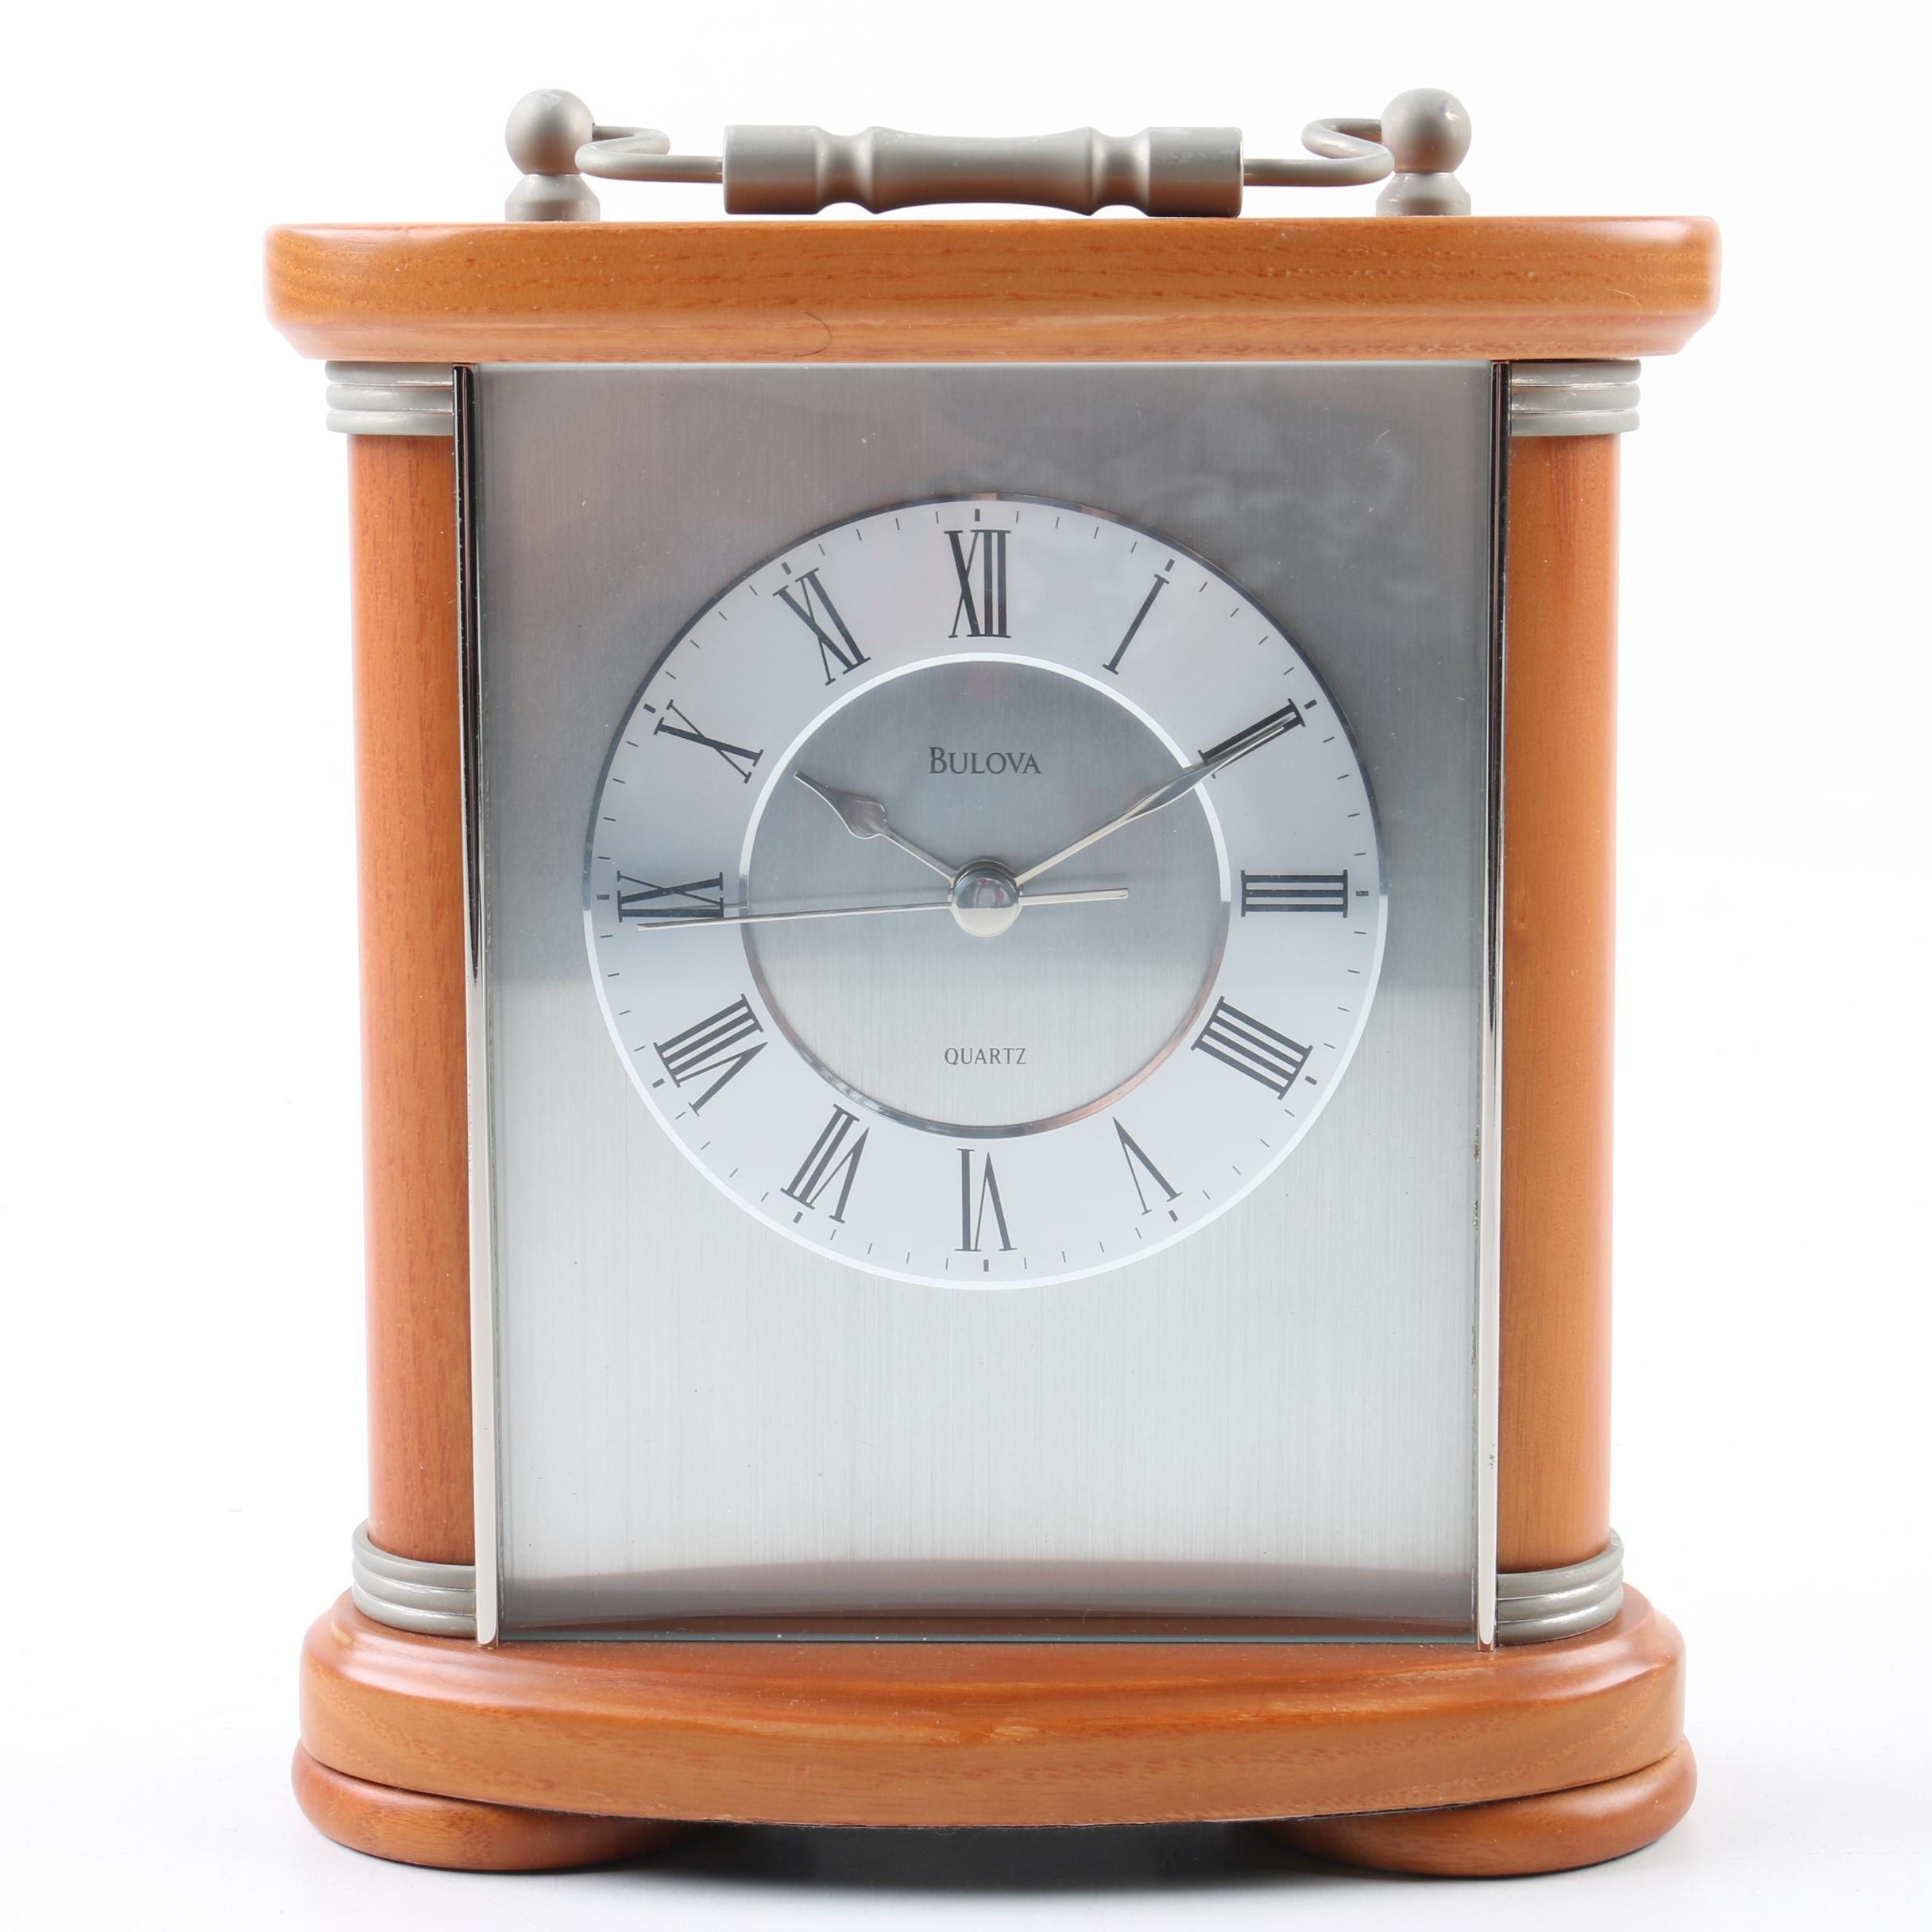 Bulova Modern Carriage Clock